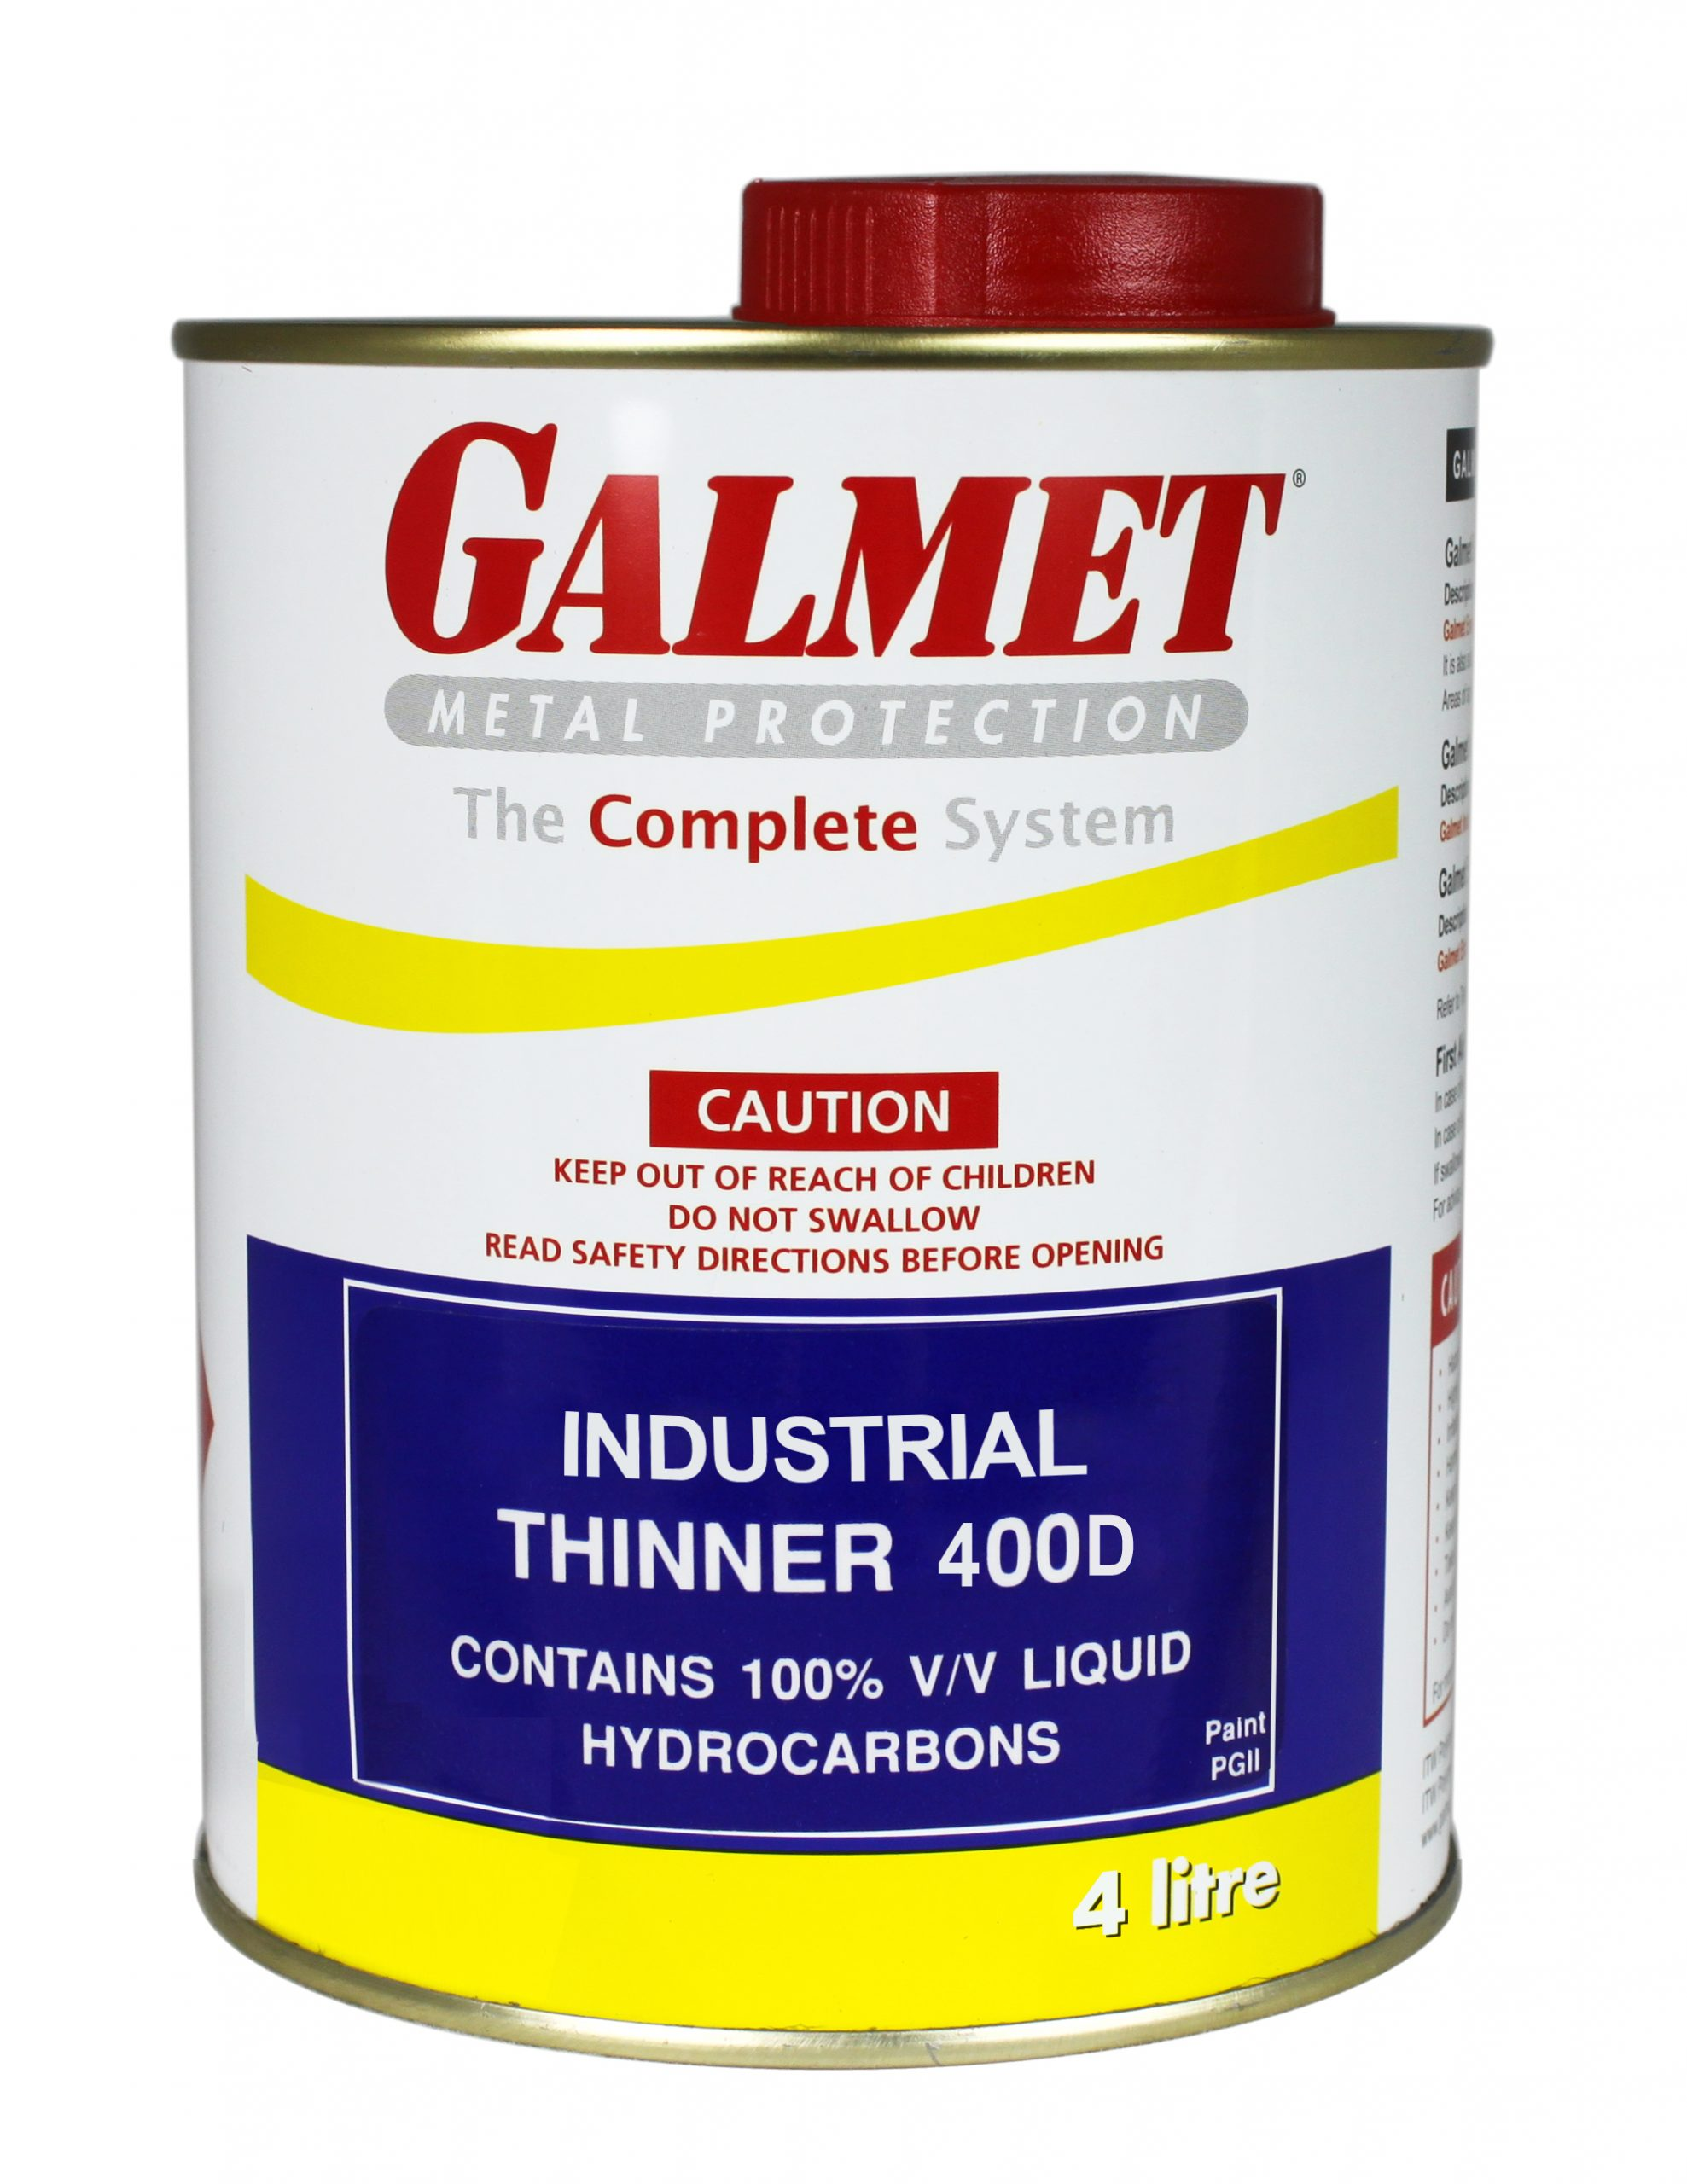 Galmet® Industrial Thinner 400D – Excellent degreasing action